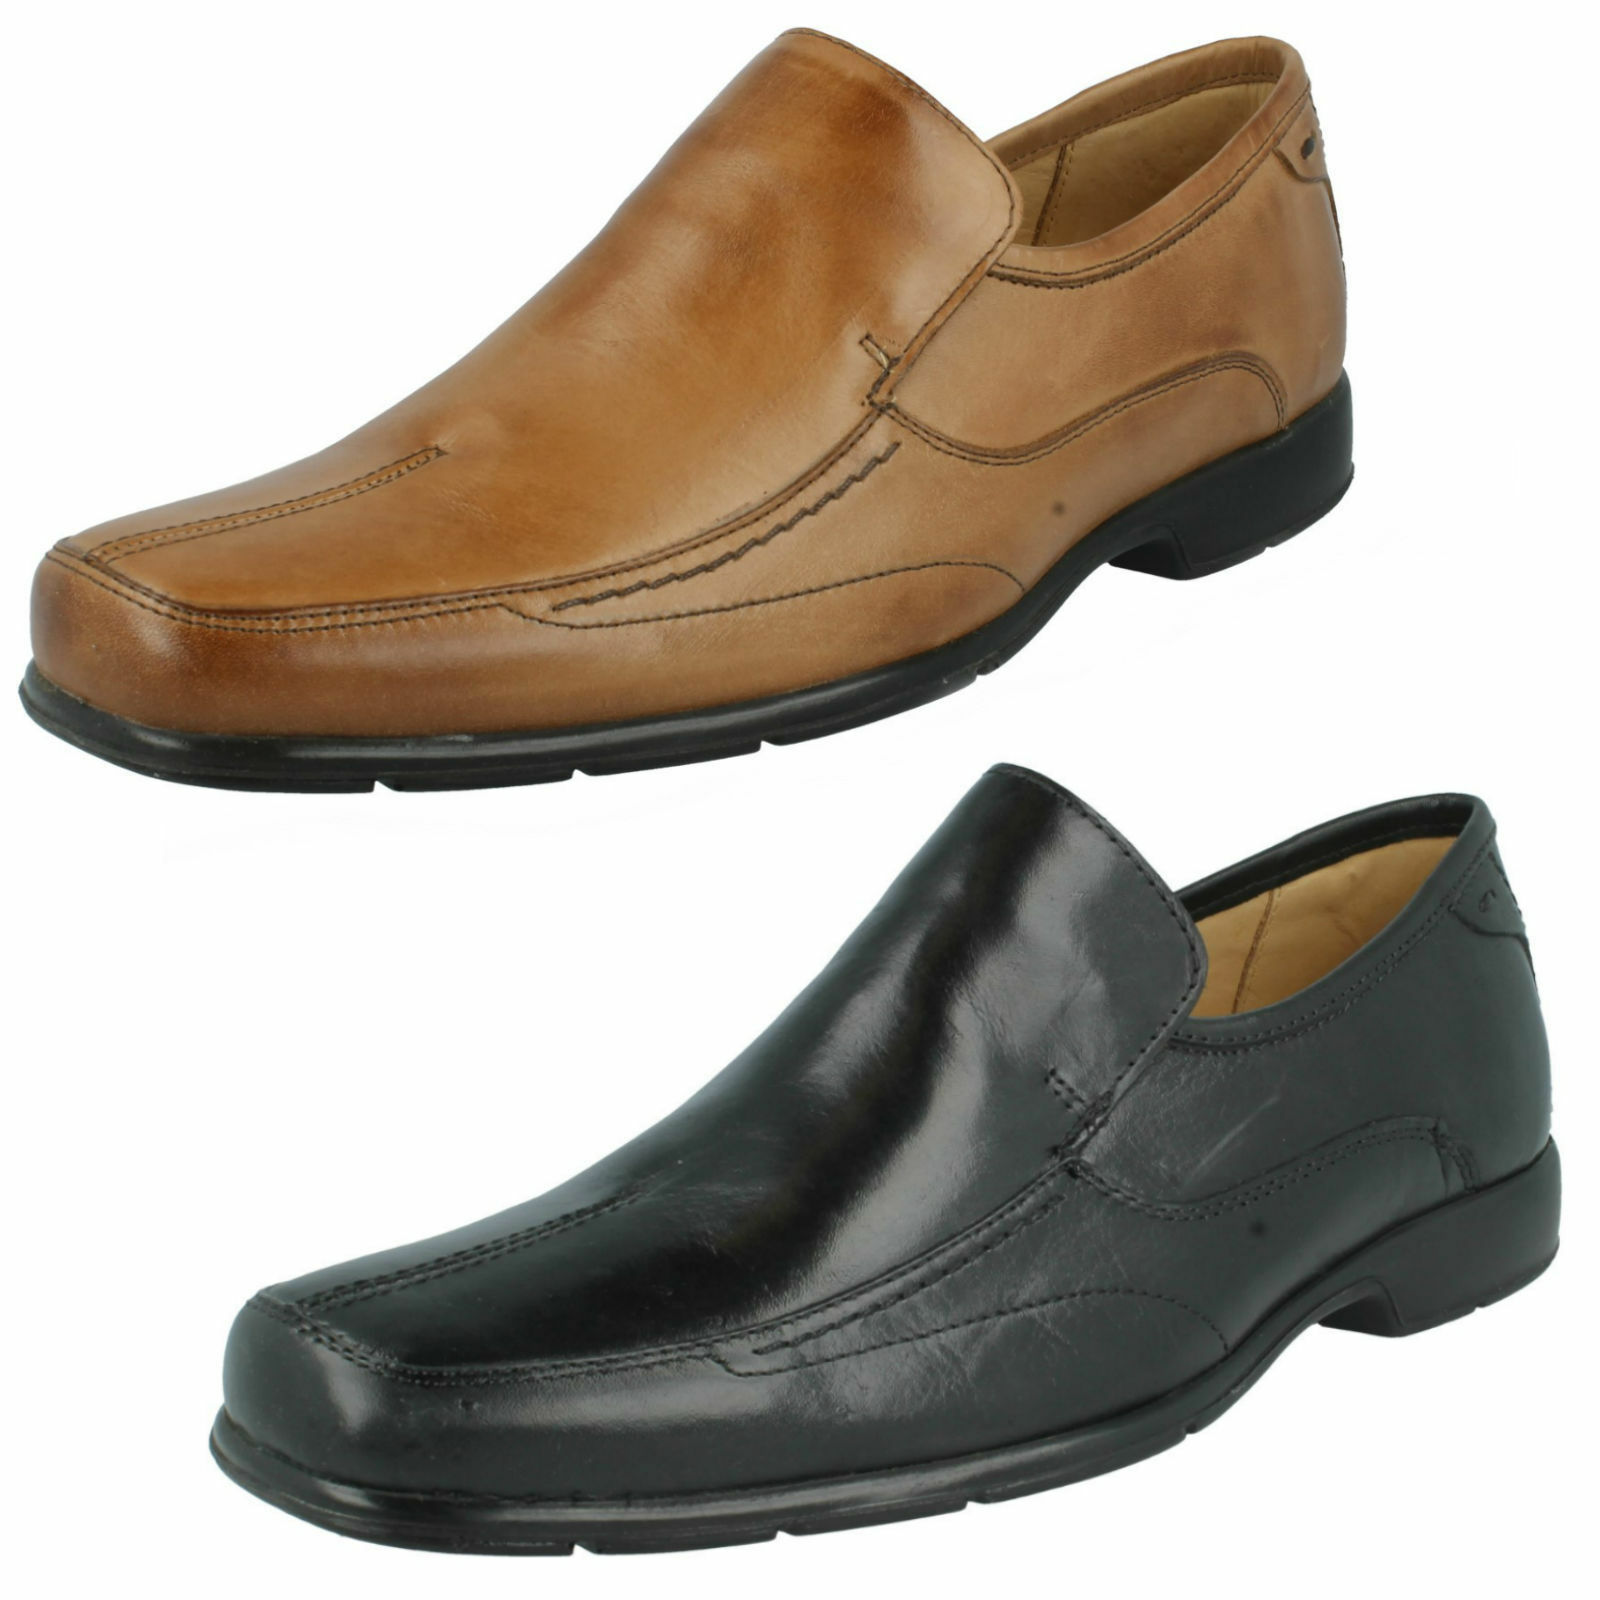 Mens PETROPOLIS Black/Tan leather slip on shoes  by ANATOMIC&CO   £79.00